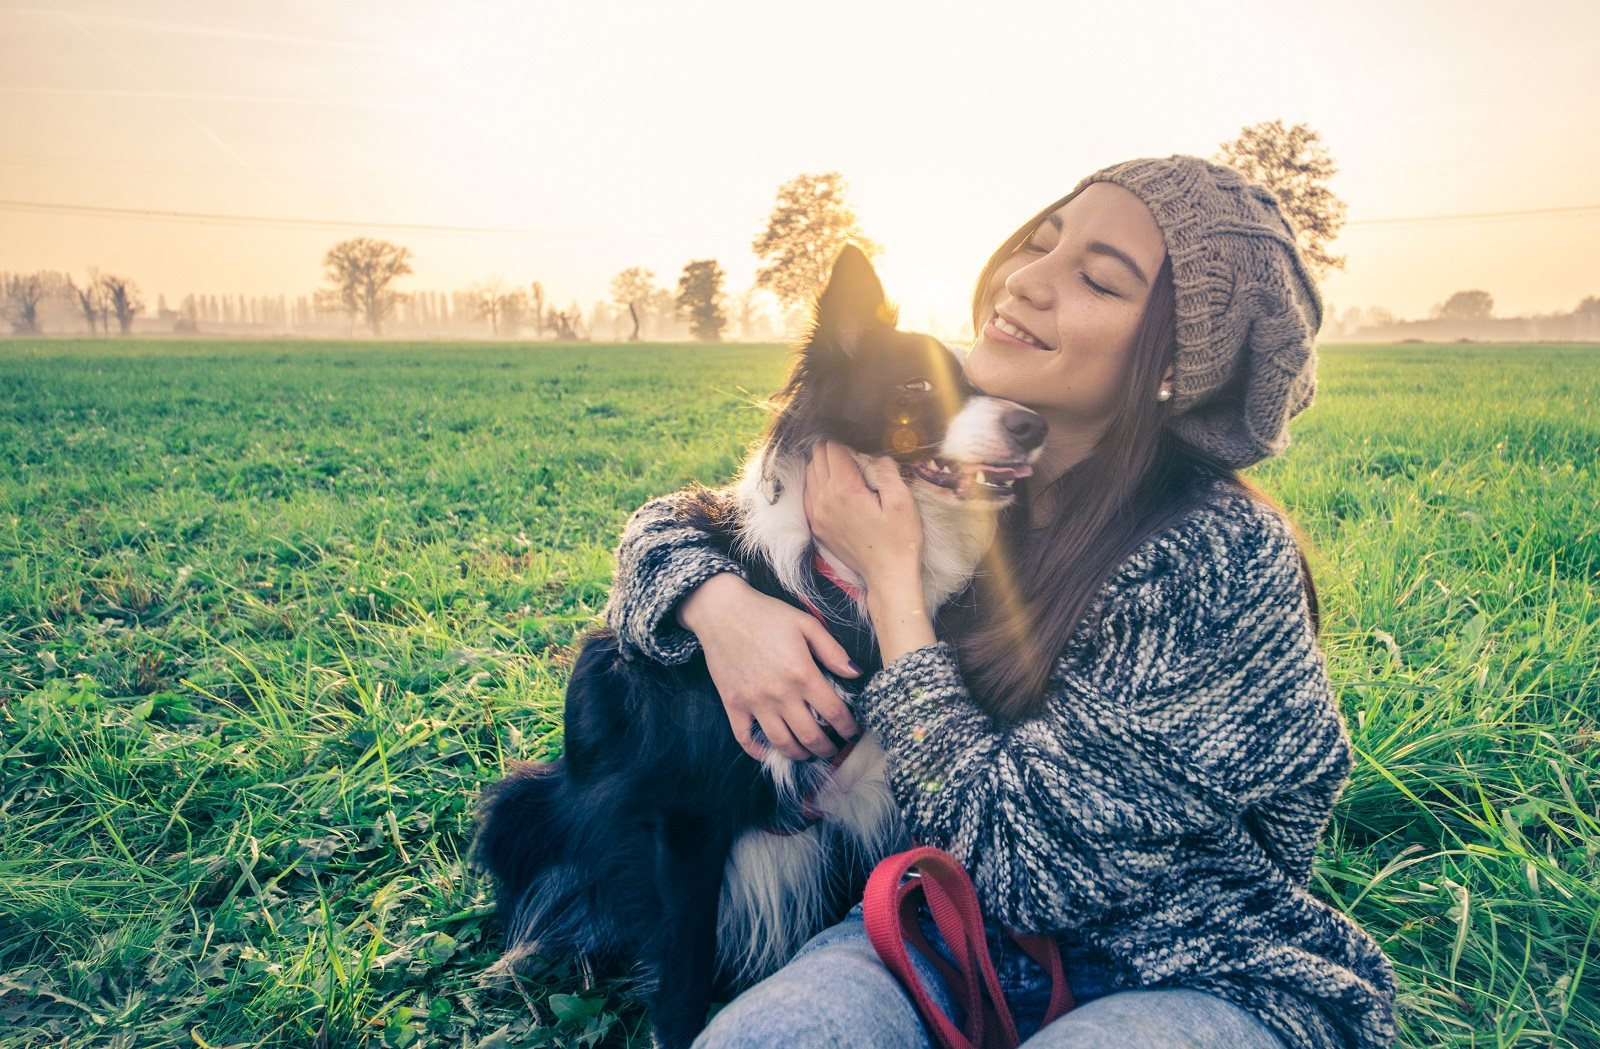 Woman playing with dog